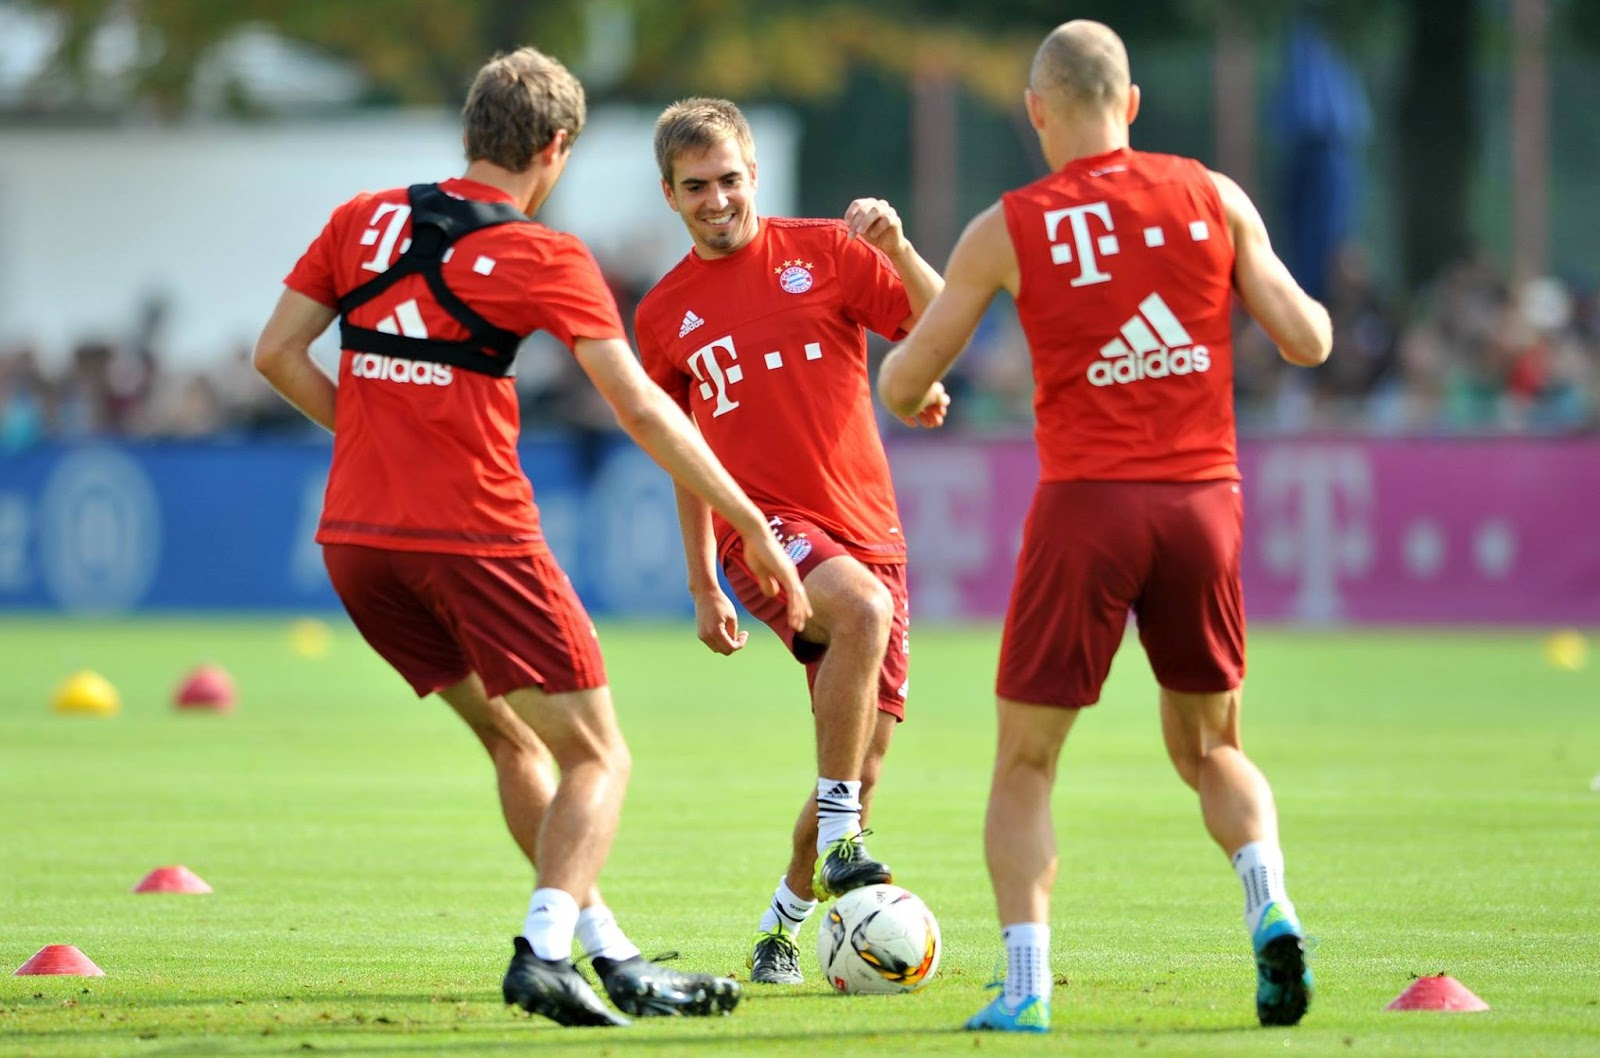 Thomas Müller Trains in Blackout Next Gen Adidas X 2016 Boots